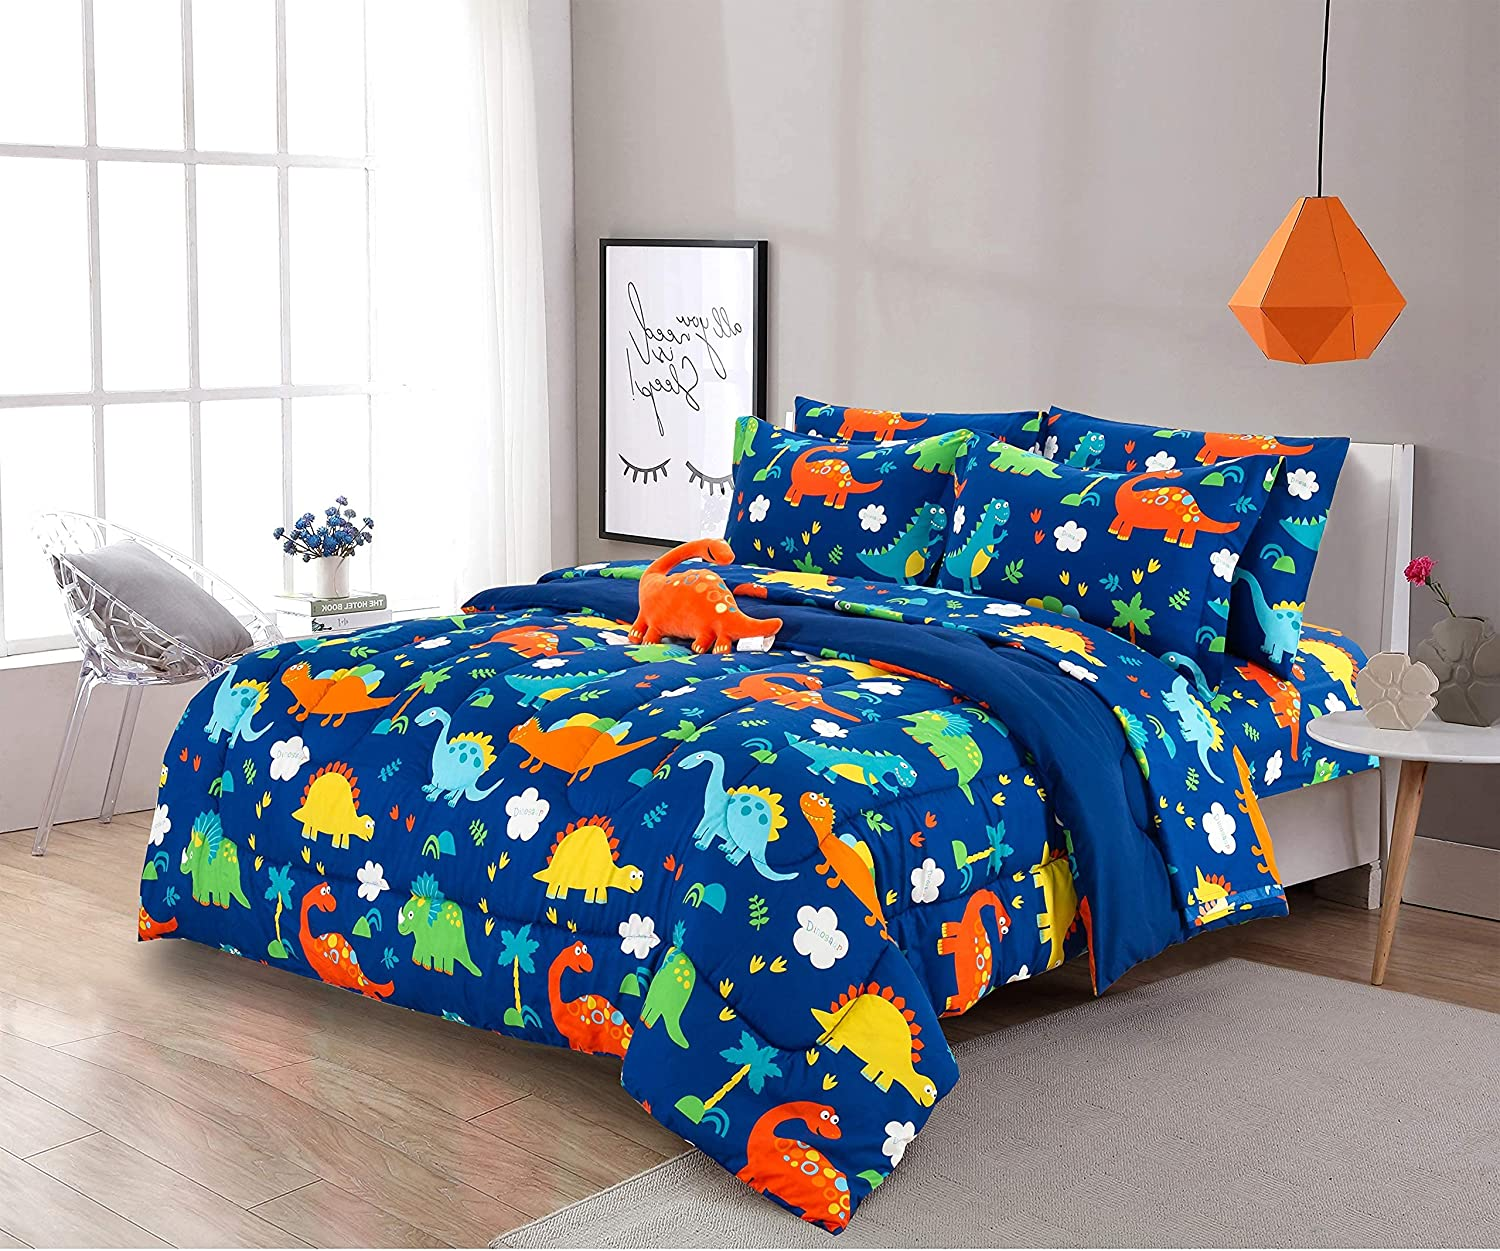 8 Piece Queen Size Kids Boys Teens Now free shipping Las Vegas Mall Bed Set in with Bag Comforter